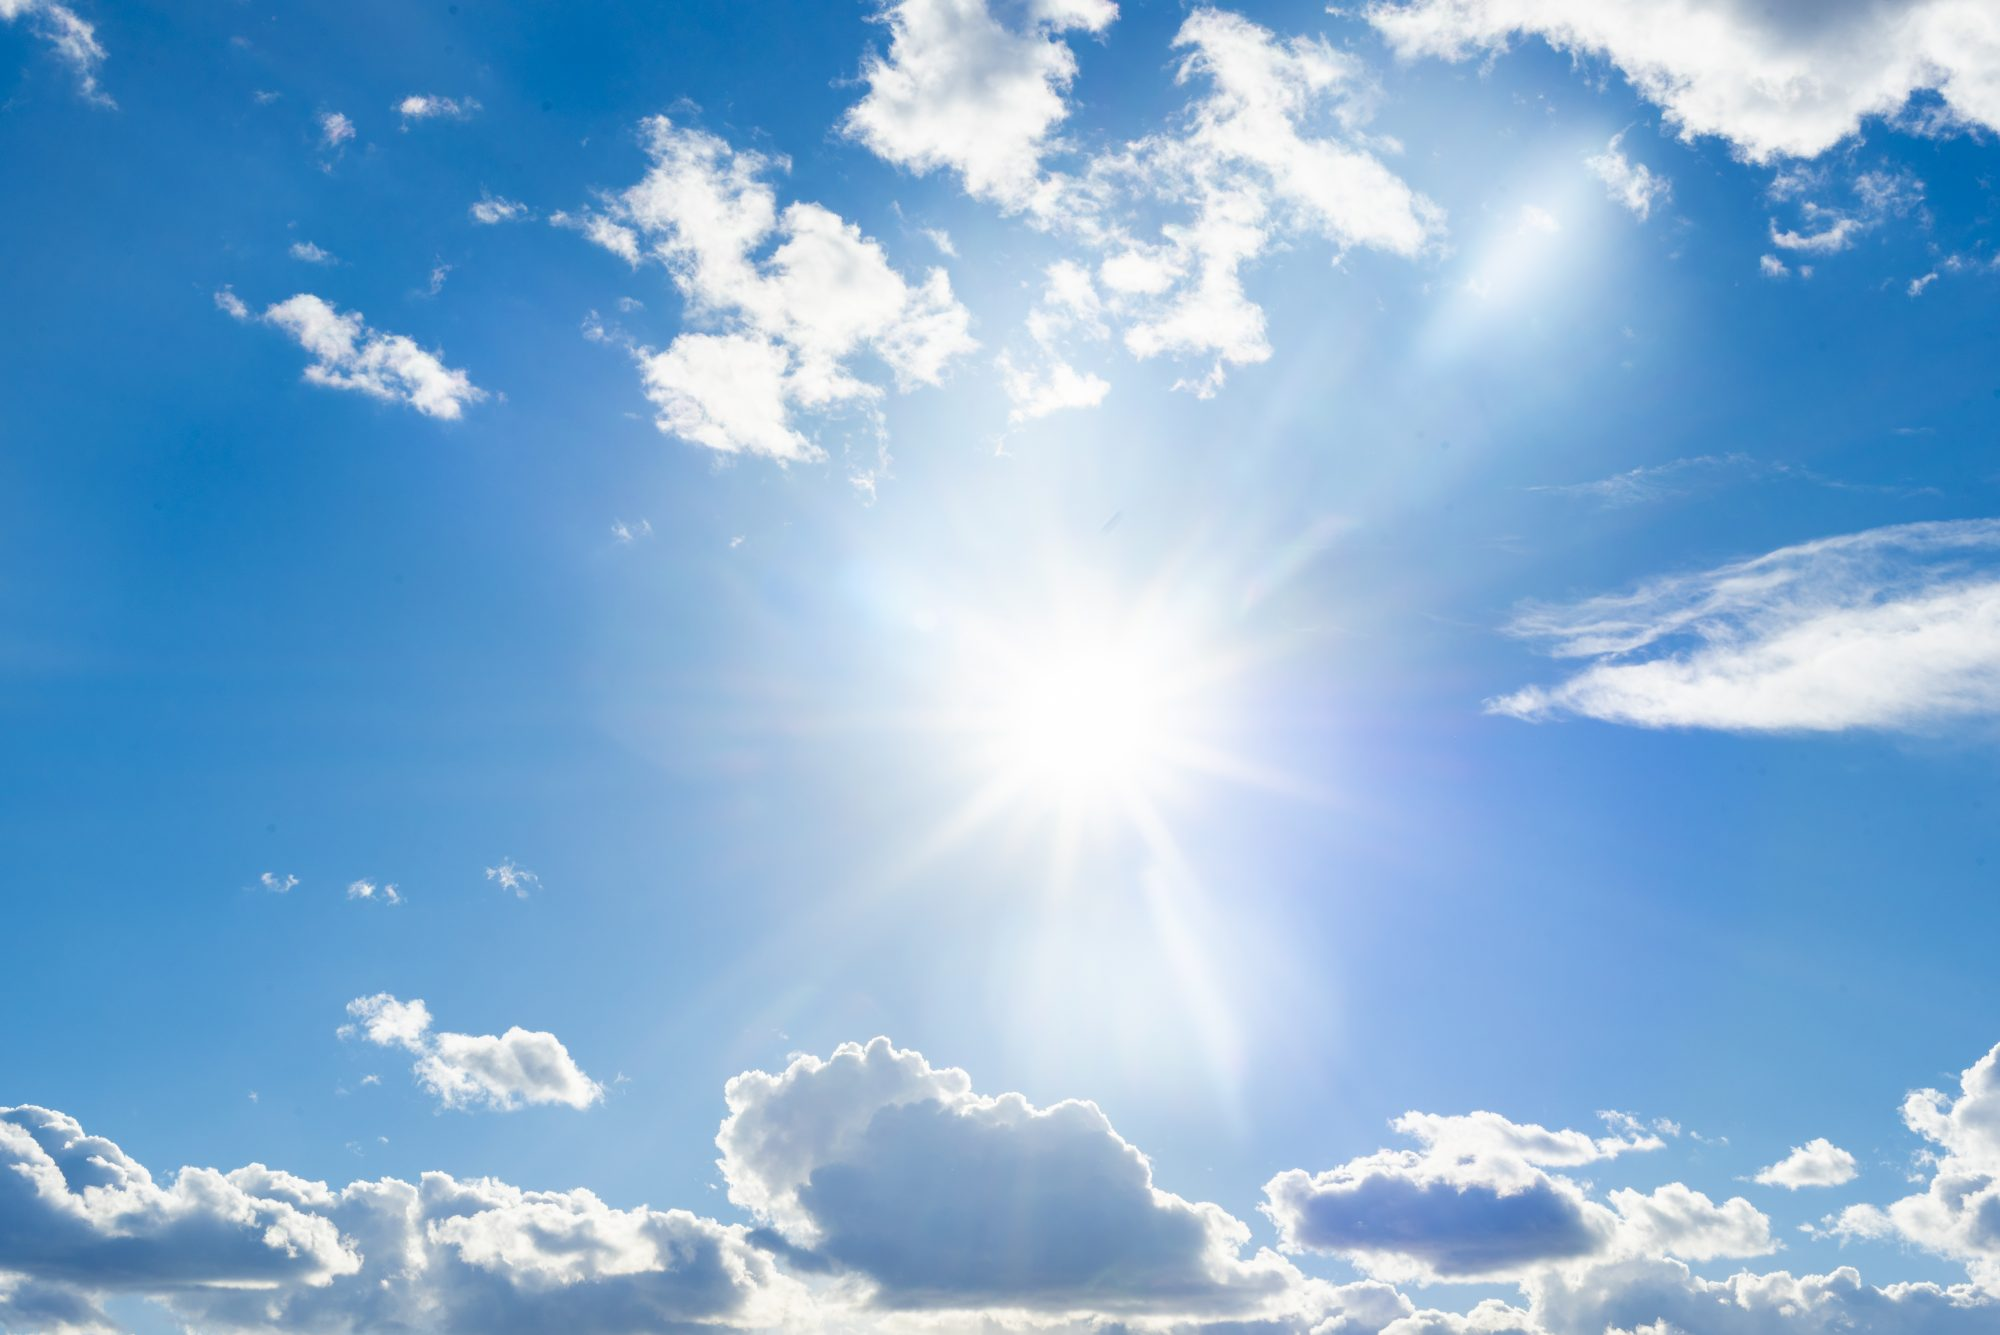 The sun shines brightly in the blue sky: vitamin d deficiency